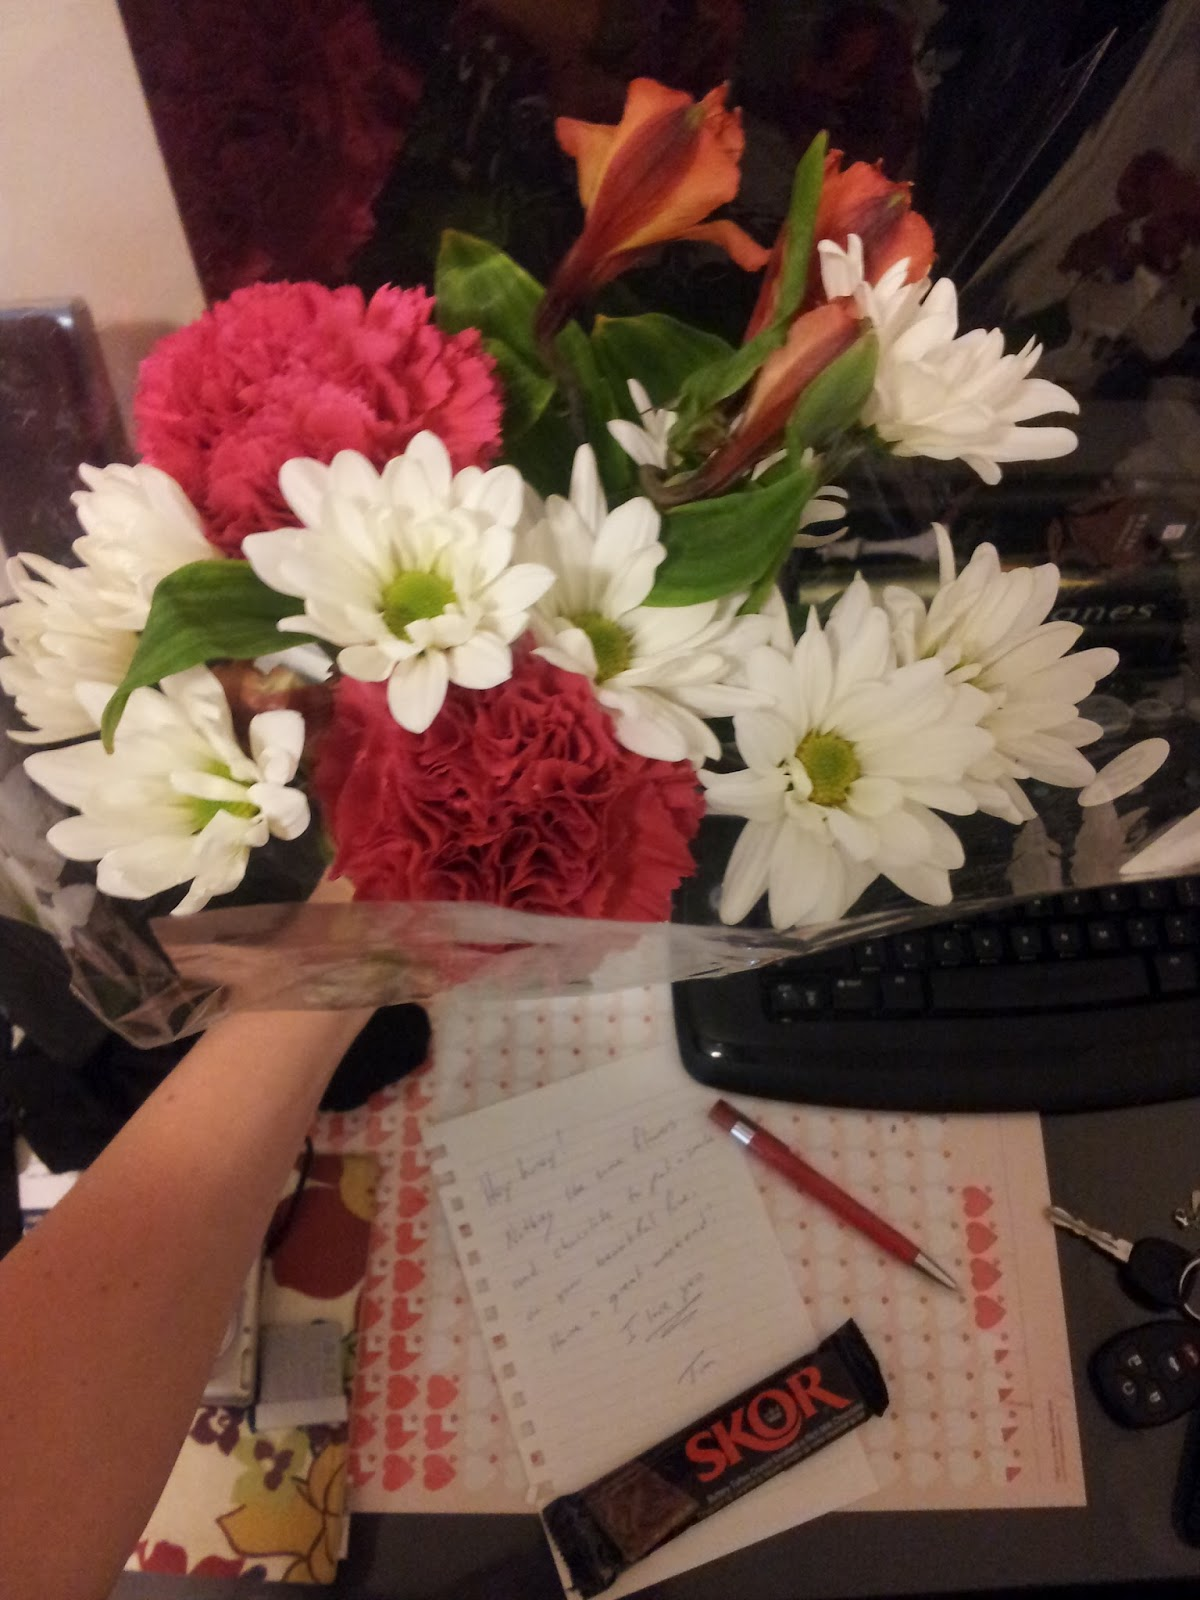 Only in Peterborough: The Best Boyfriend - Surprise Flowers!